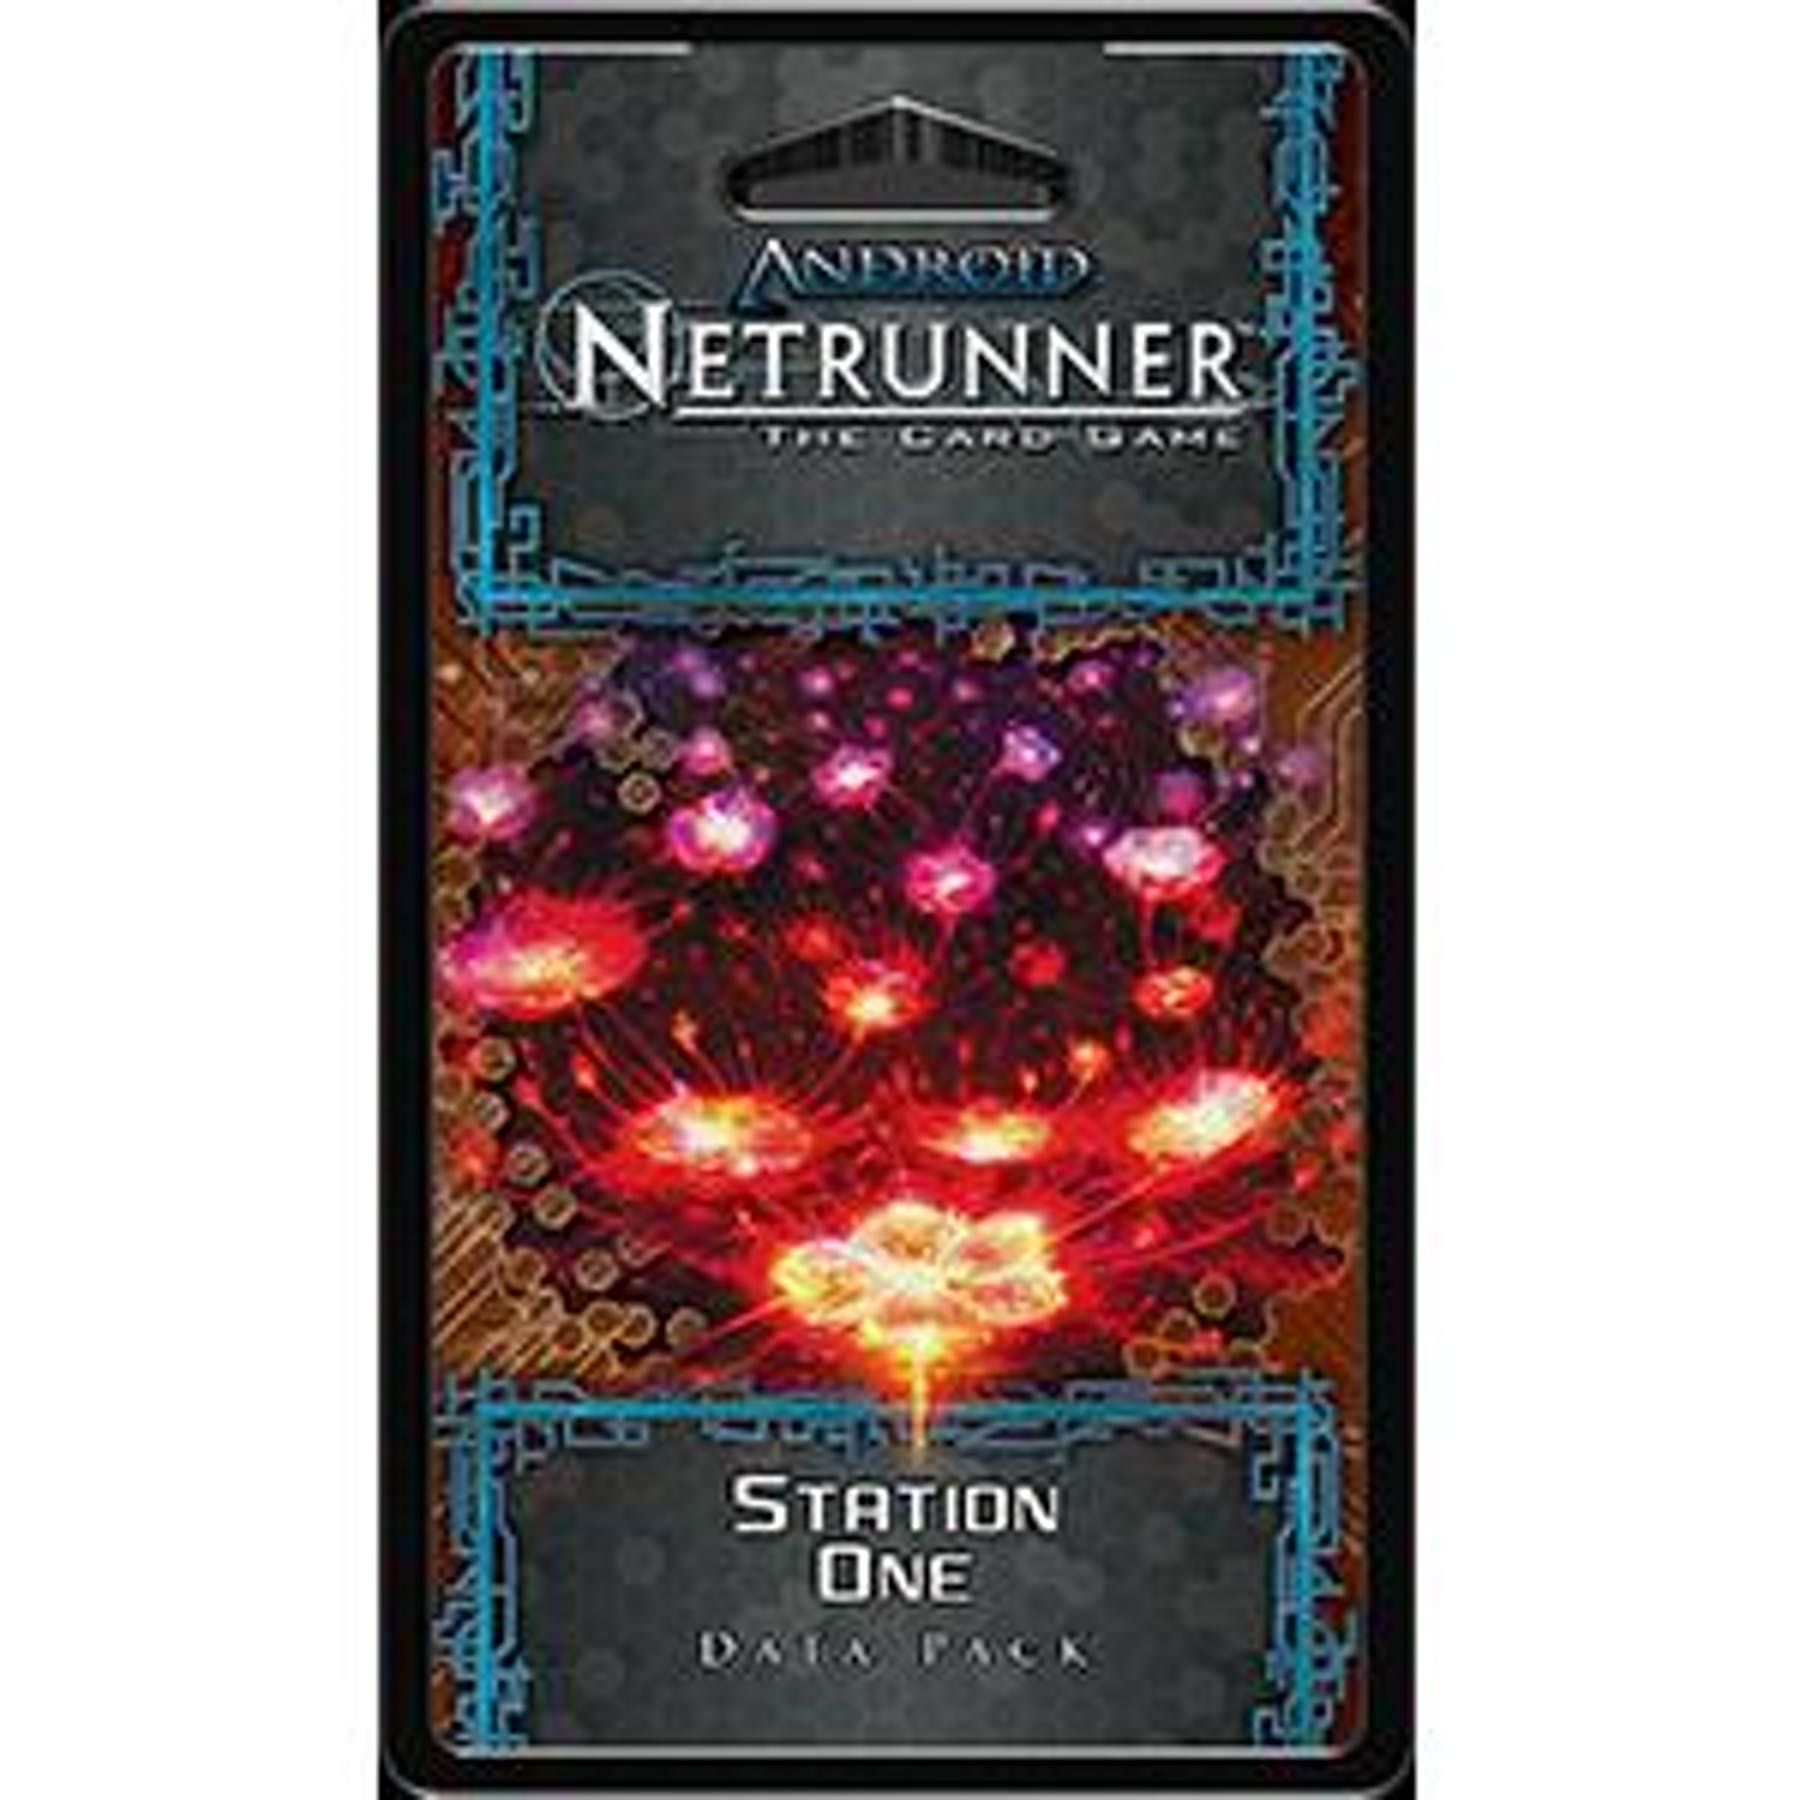 Android : Netrunner - Up and Over | GeekStop Games